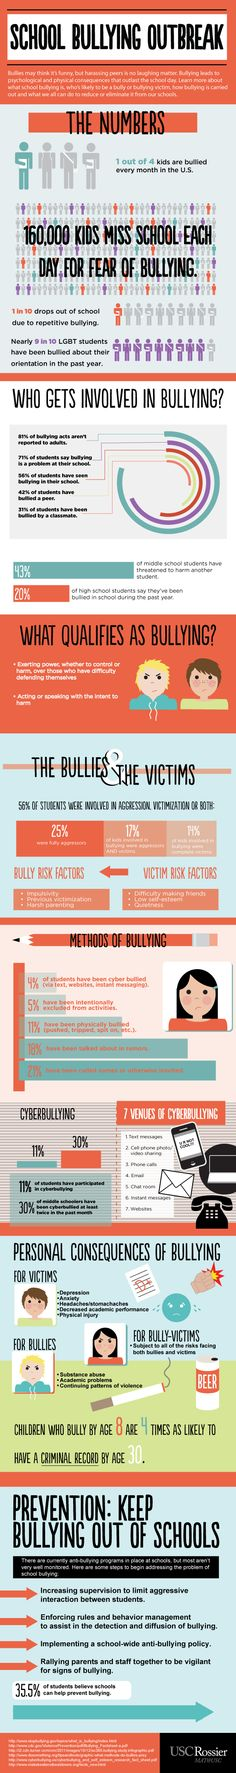 #bullying infographic from http://edudemic.com/2012/01/bullying/